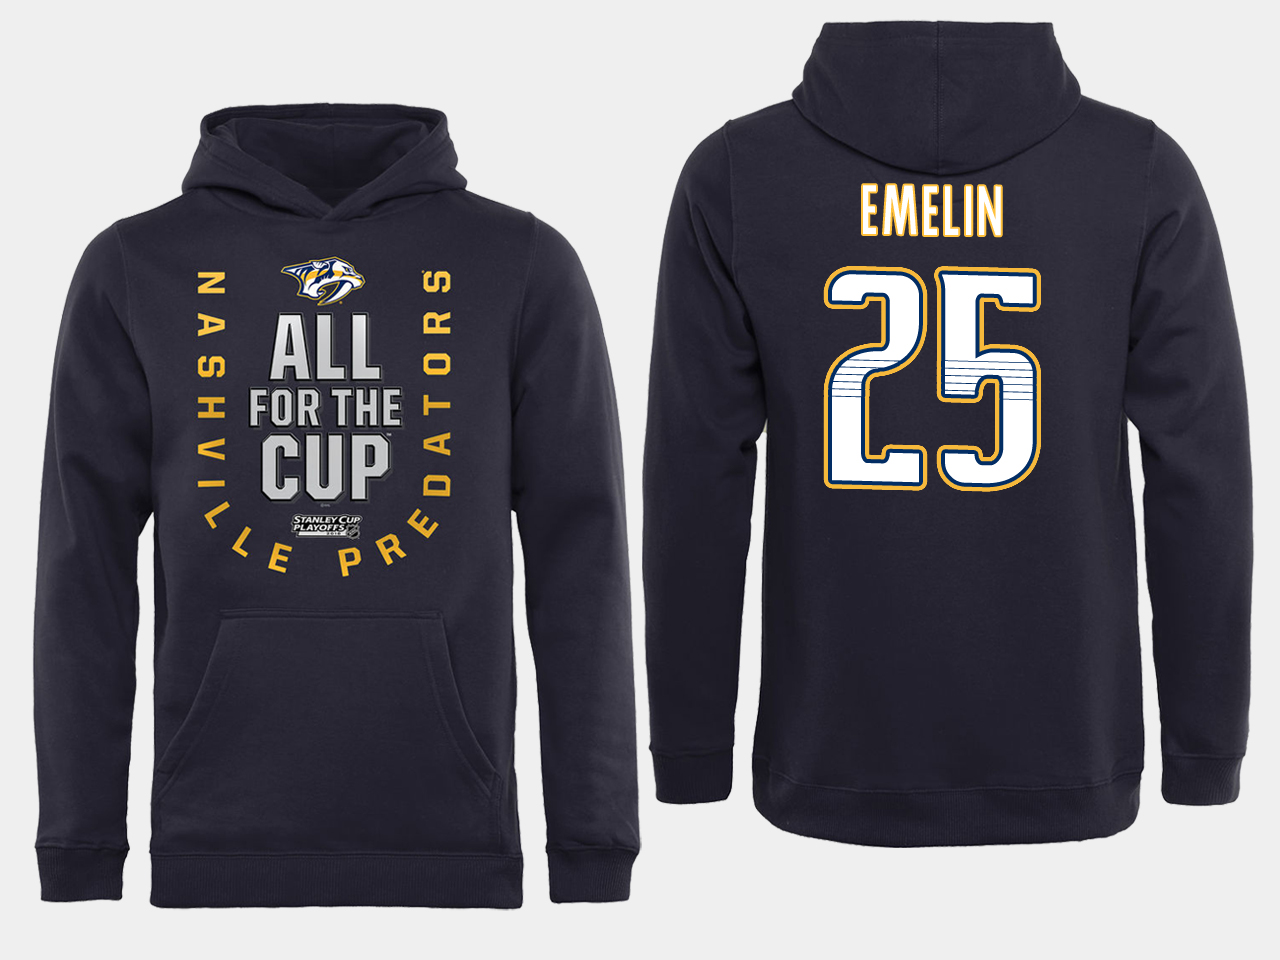 Men NHL Adidas Nashville Predators 25 Emelin black ALL for the Cup hoodie